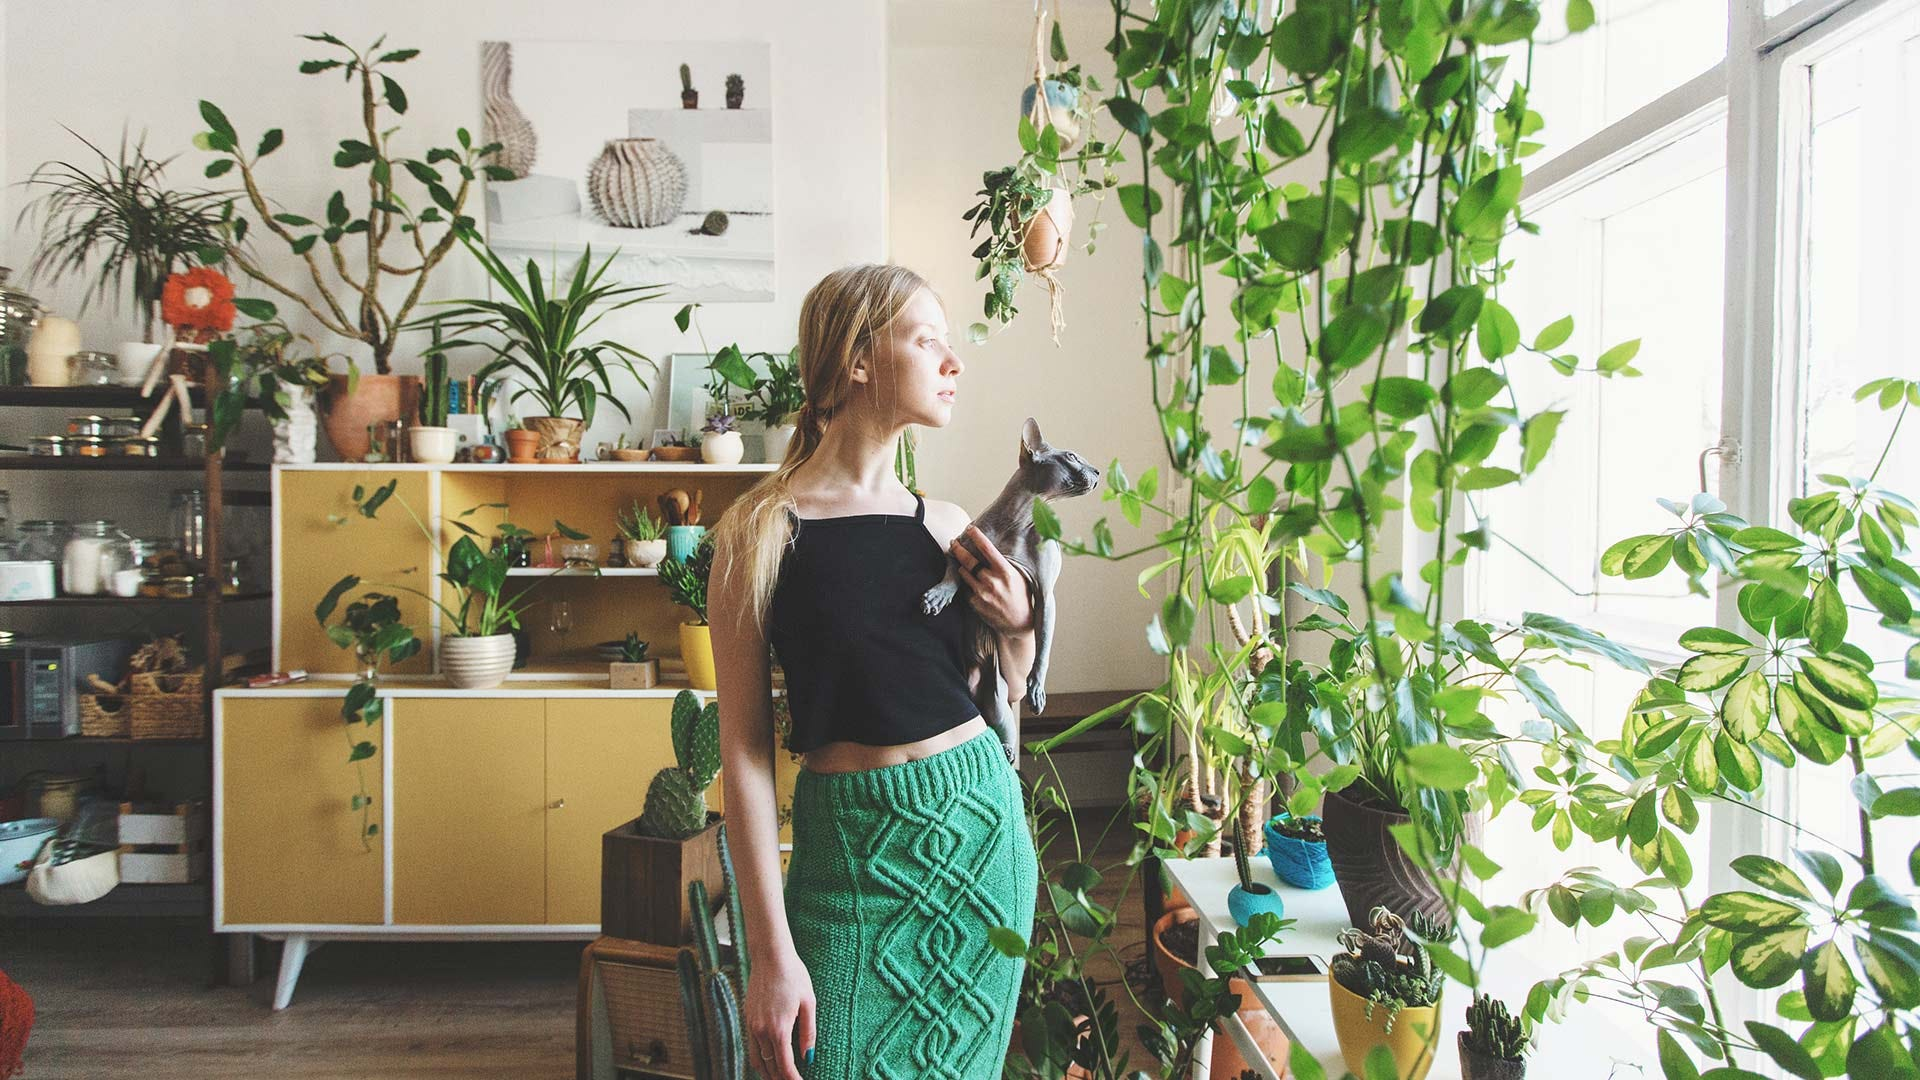 A woman looking out a window covered in plants.